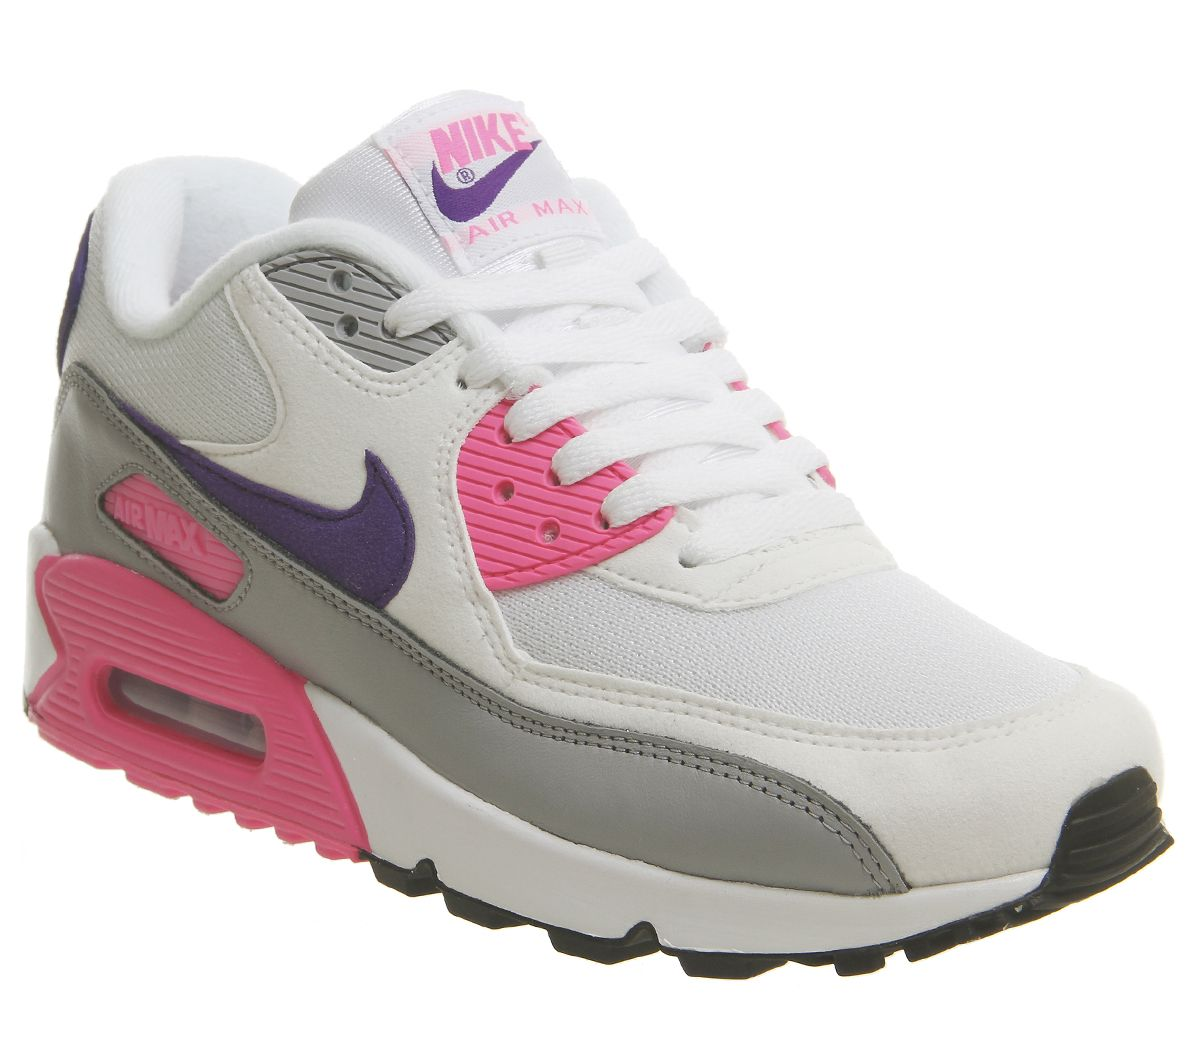 new style 18c21 21b6b Nike Air Max 90 Trainers White Court Purple Wolf Grey Laser Pink F ...